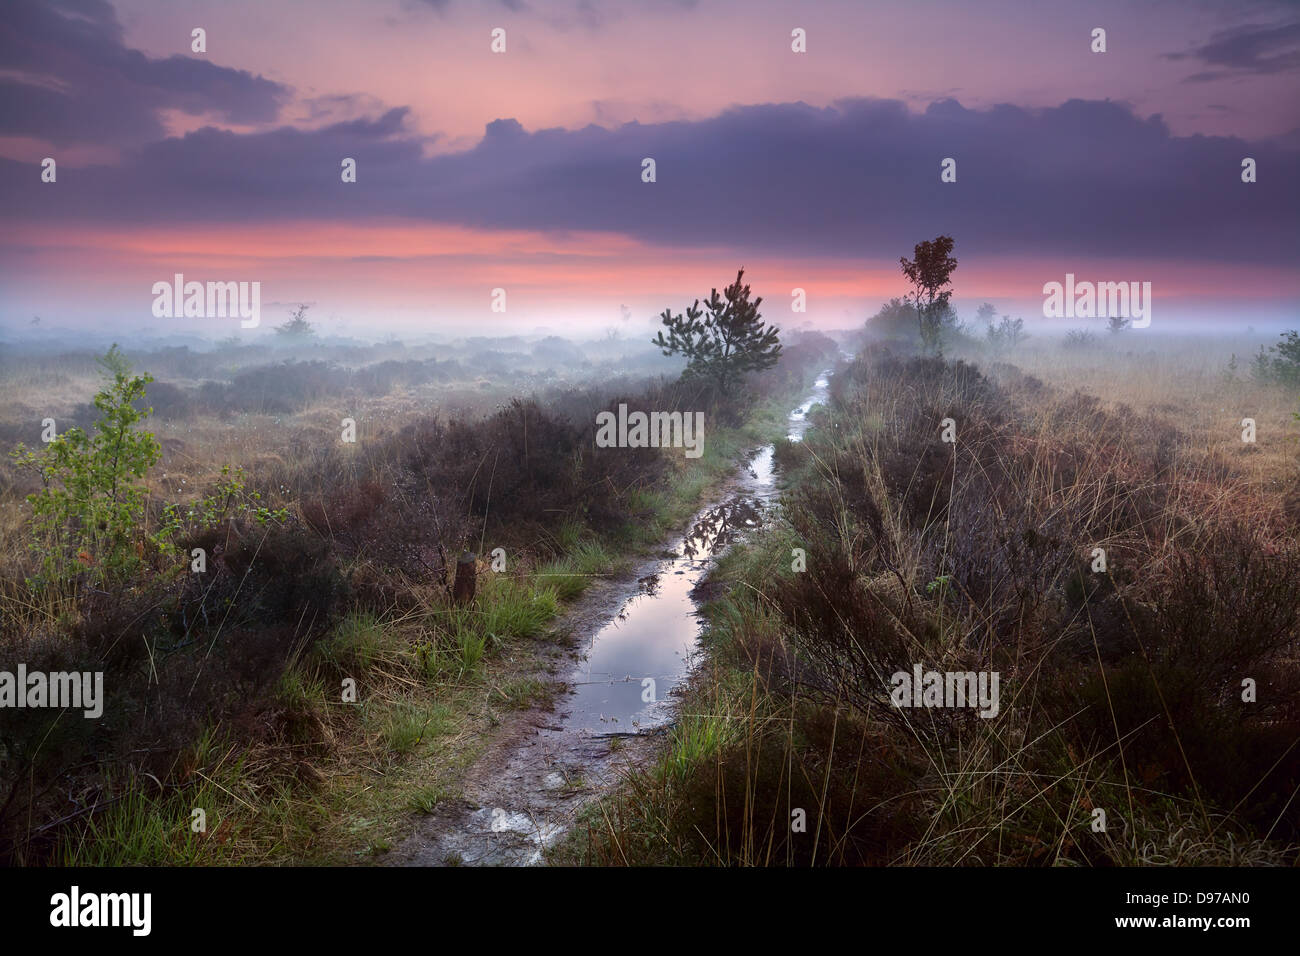 wet narrow path in fog over swamps, Drenthe, Netherlands - Stock Image